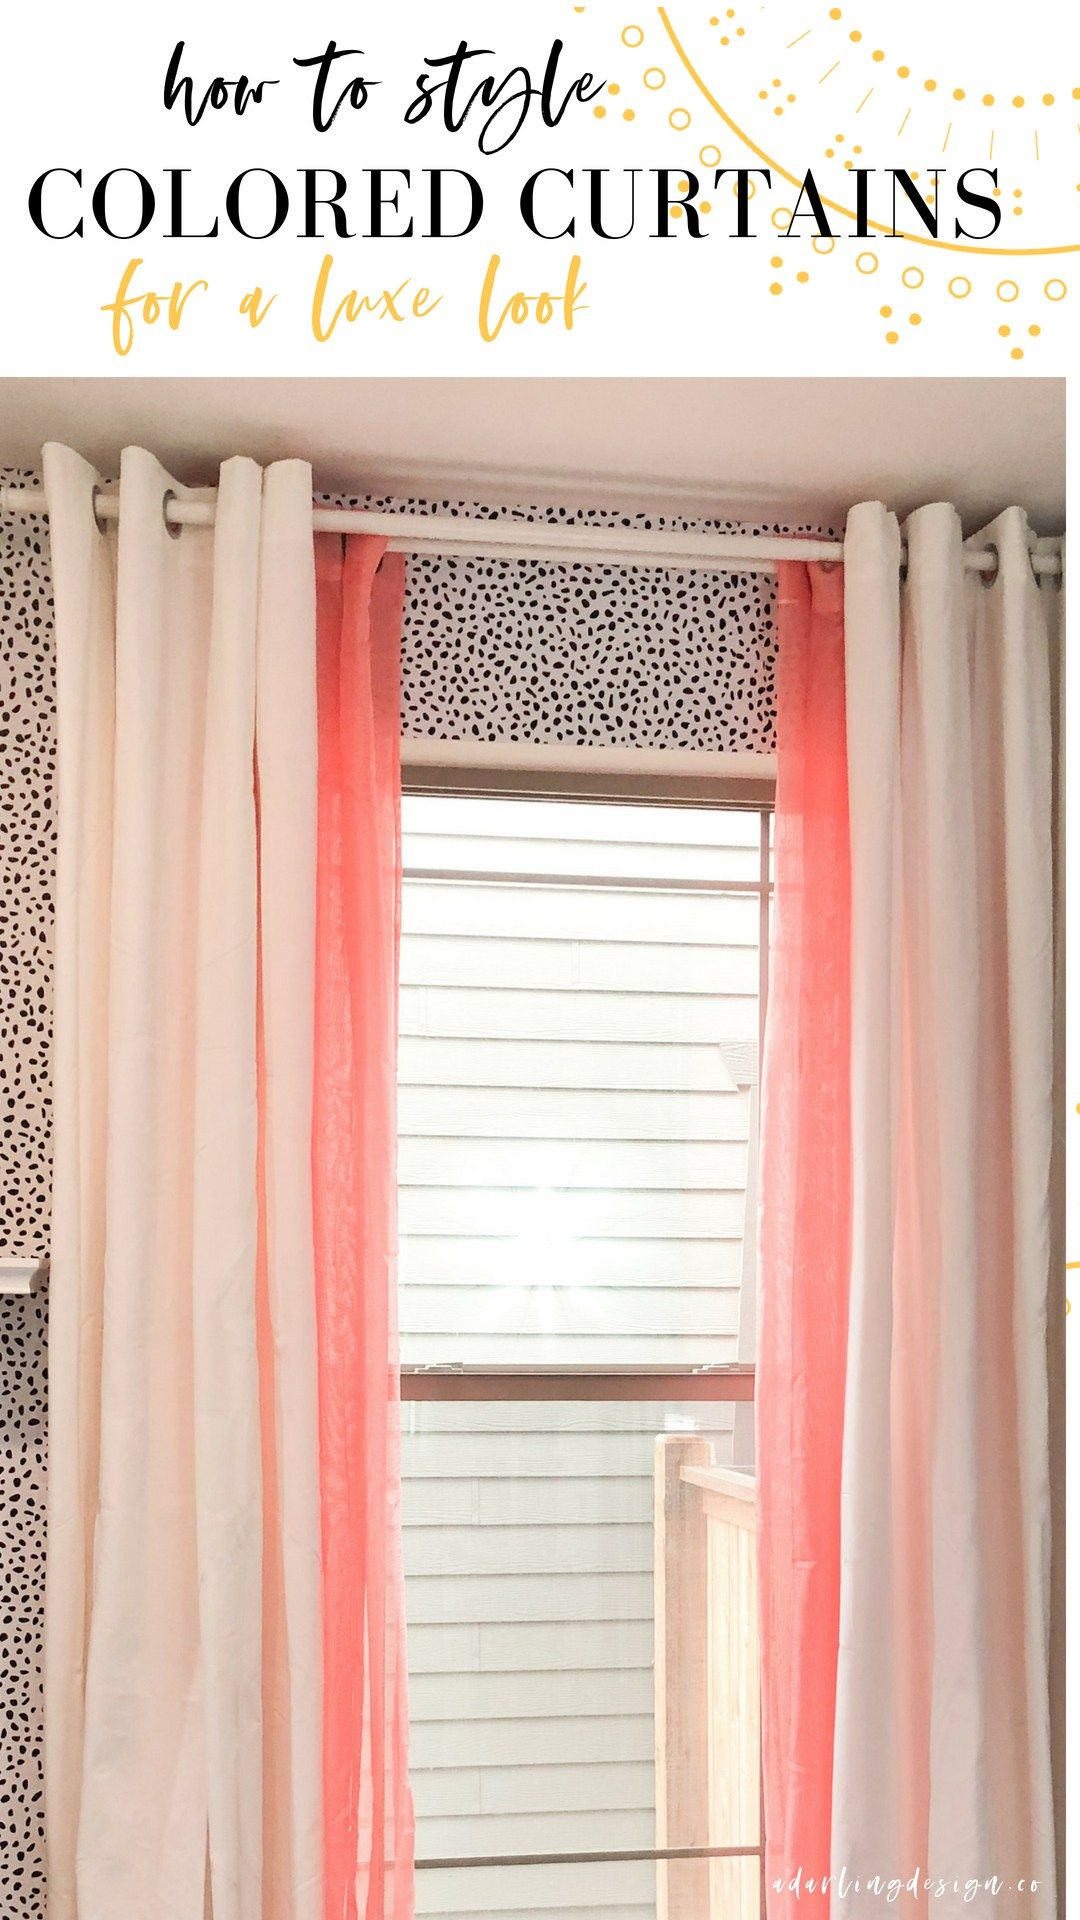 Heres How To Style Colored Curtains Some Simple Curtain Tips